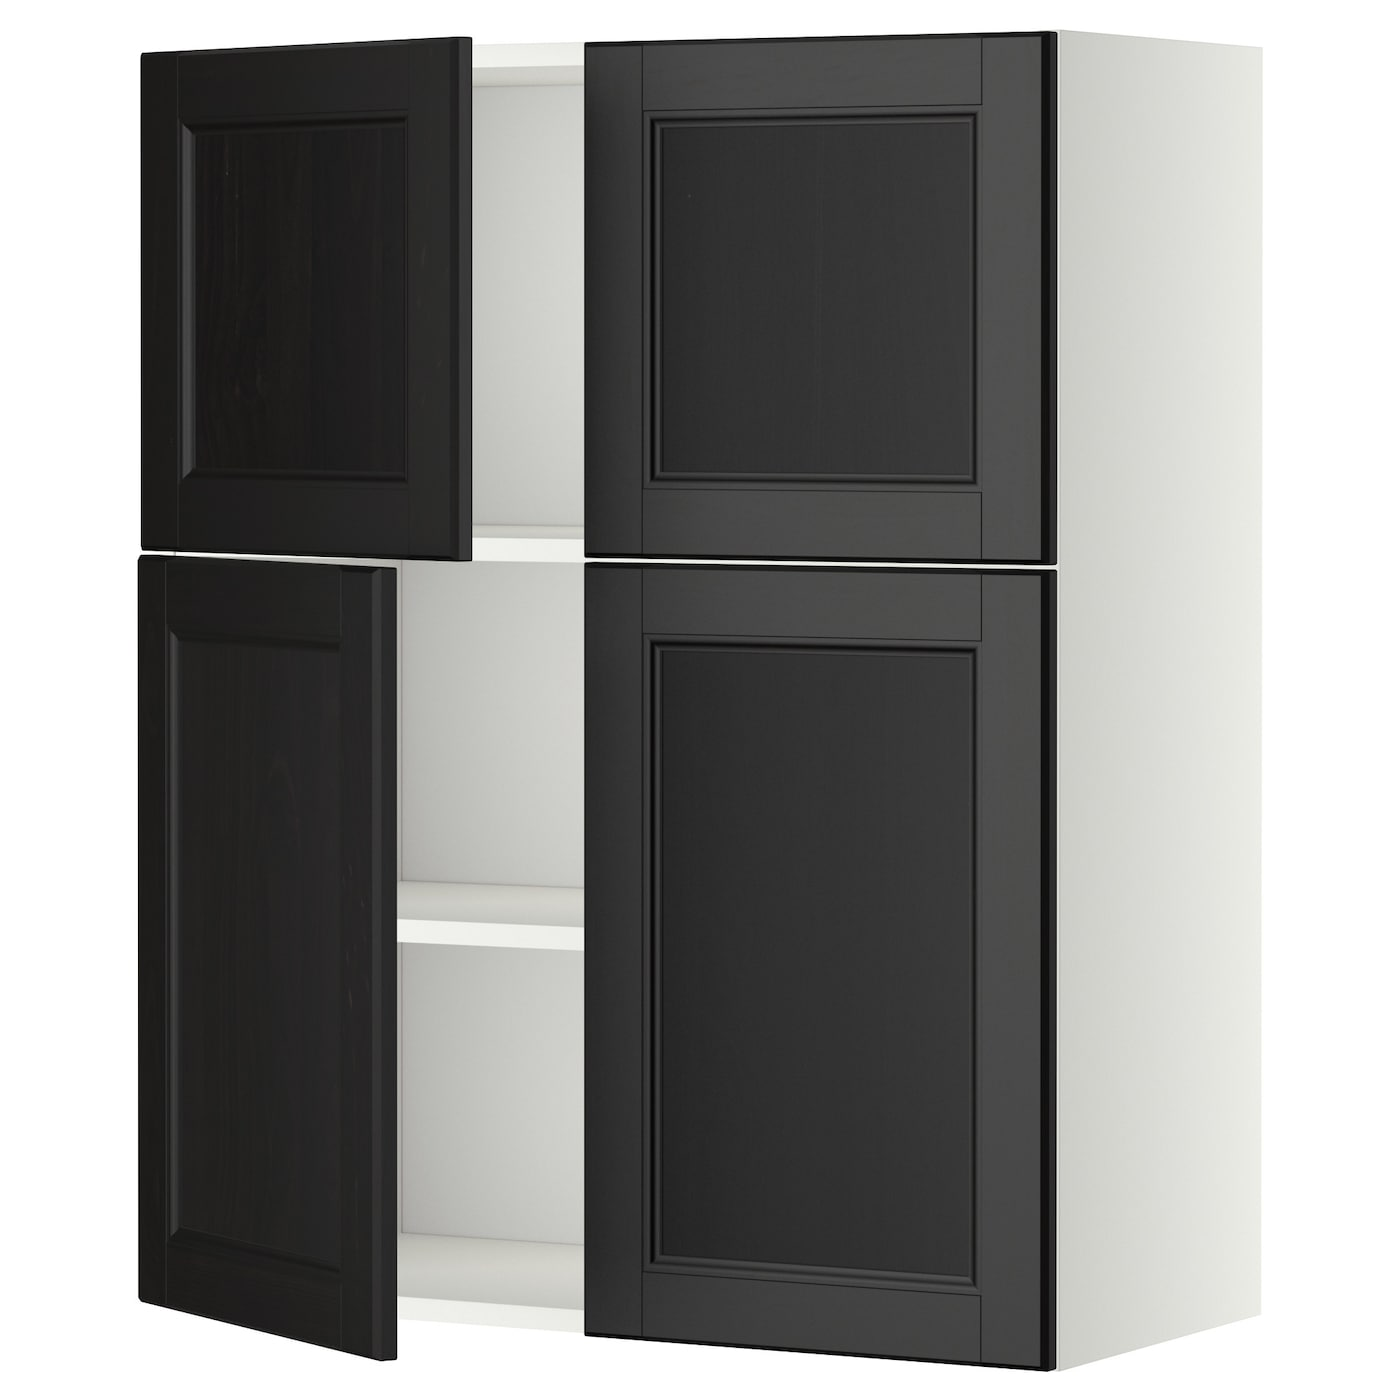 Metod Wall Cabinet With Shelves 4 Doors White Laxarby